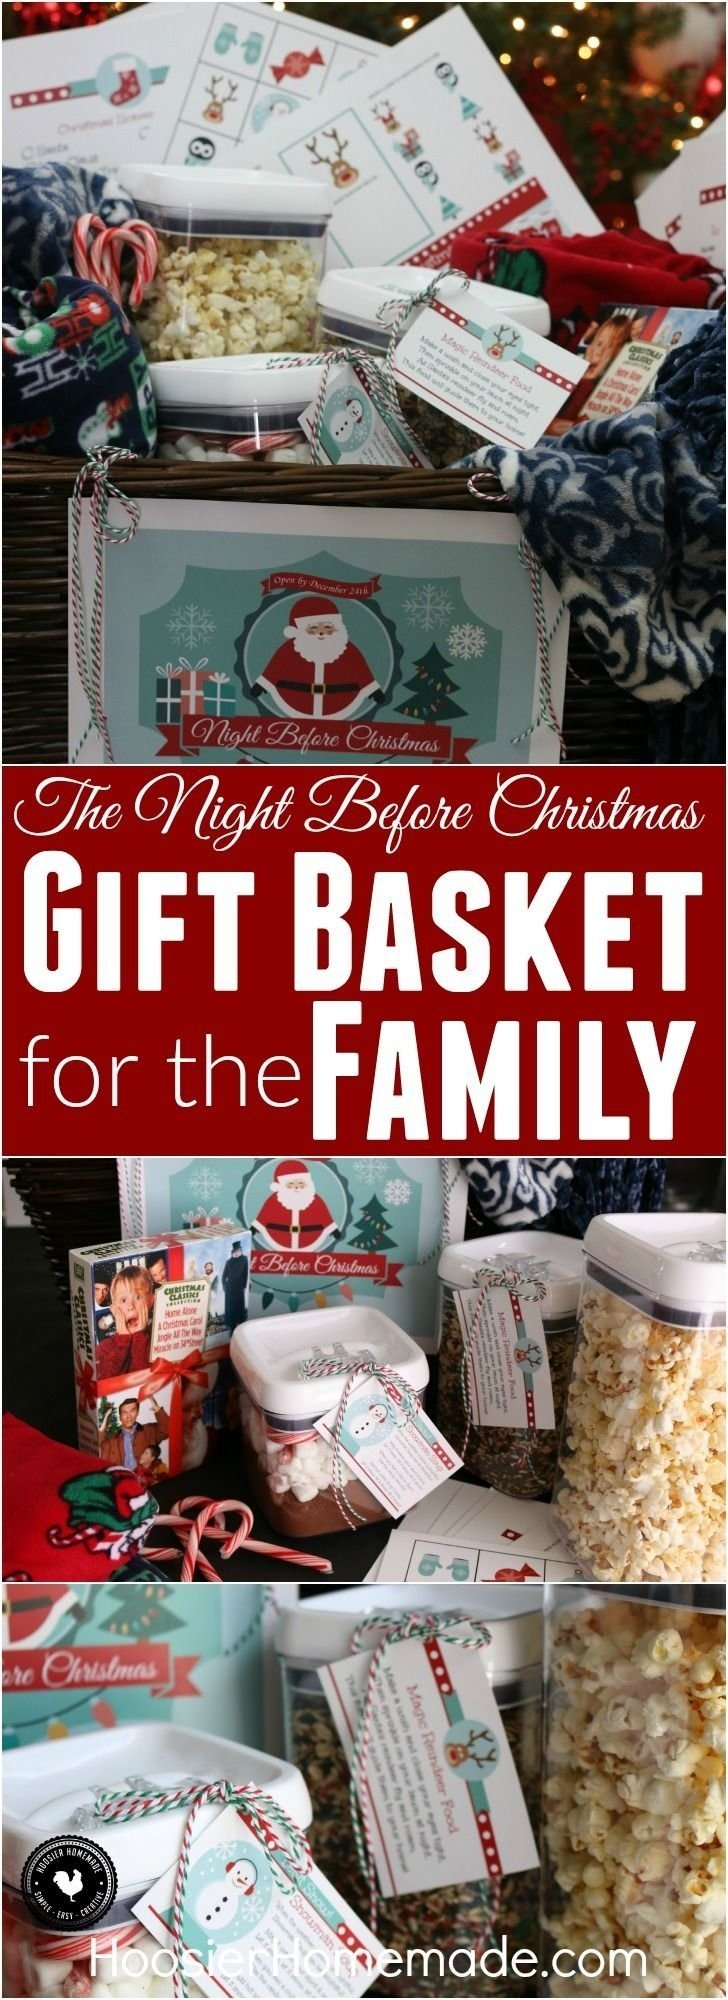 10 Lovable Family Christmas Gift Basket Ideas 50 themed christmas basket ideas christmas gifts gift and holidays 2 2020